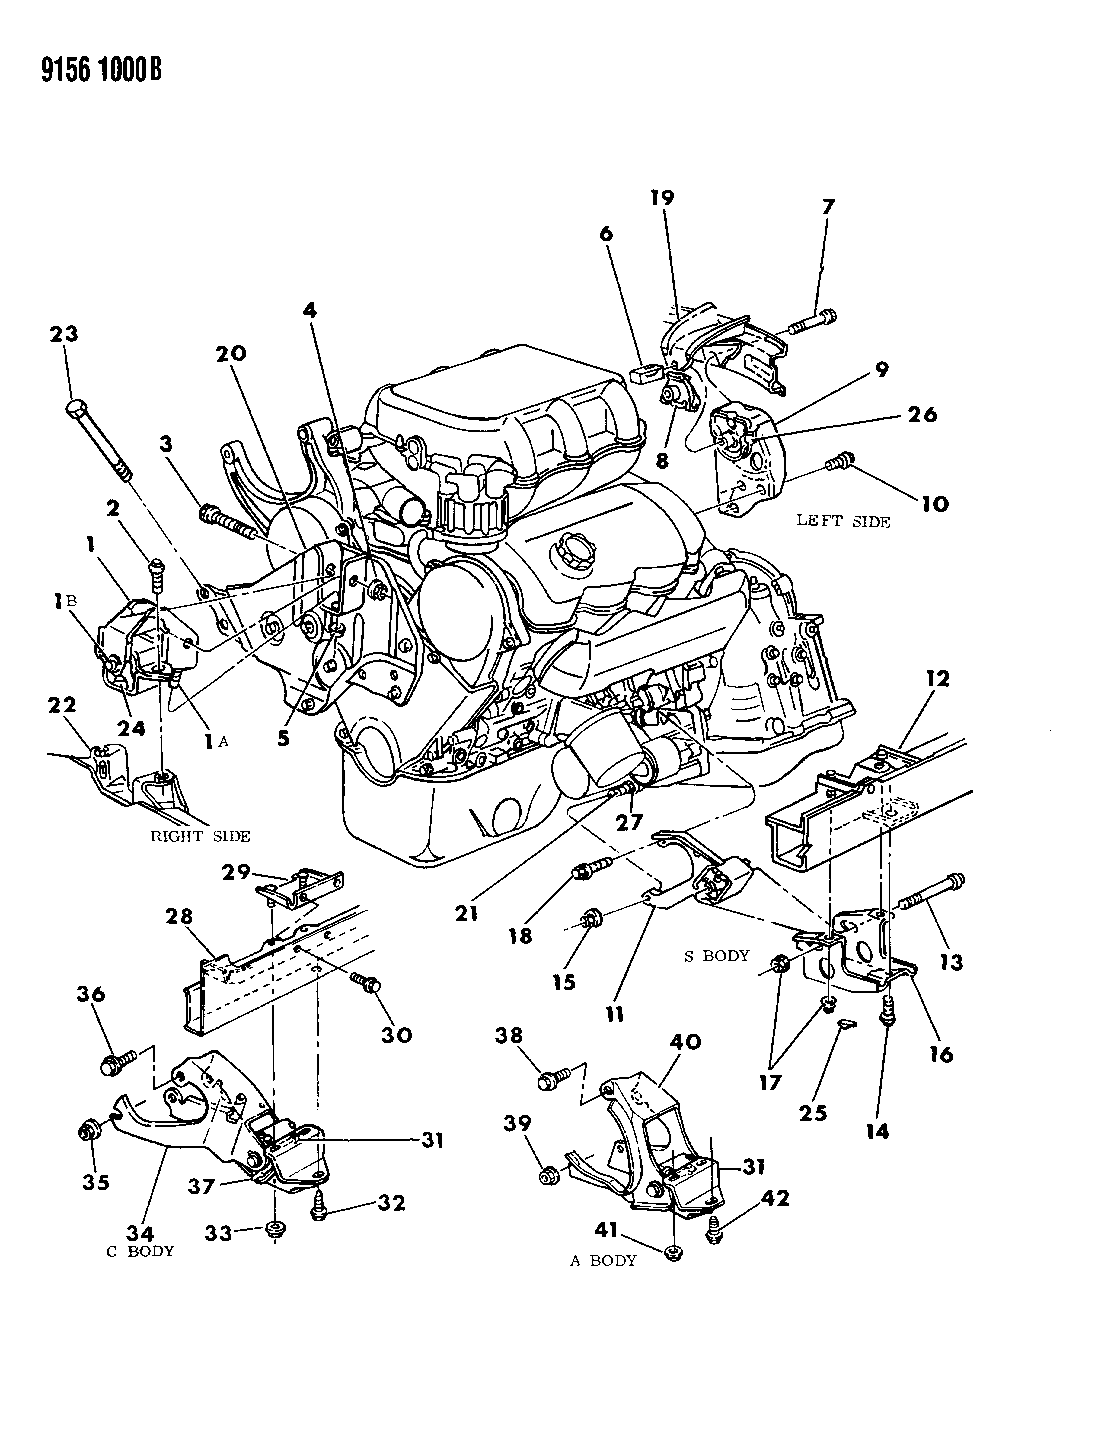 1989 Dodge Grand Caravan Engine Mounting - Thumbnail 1